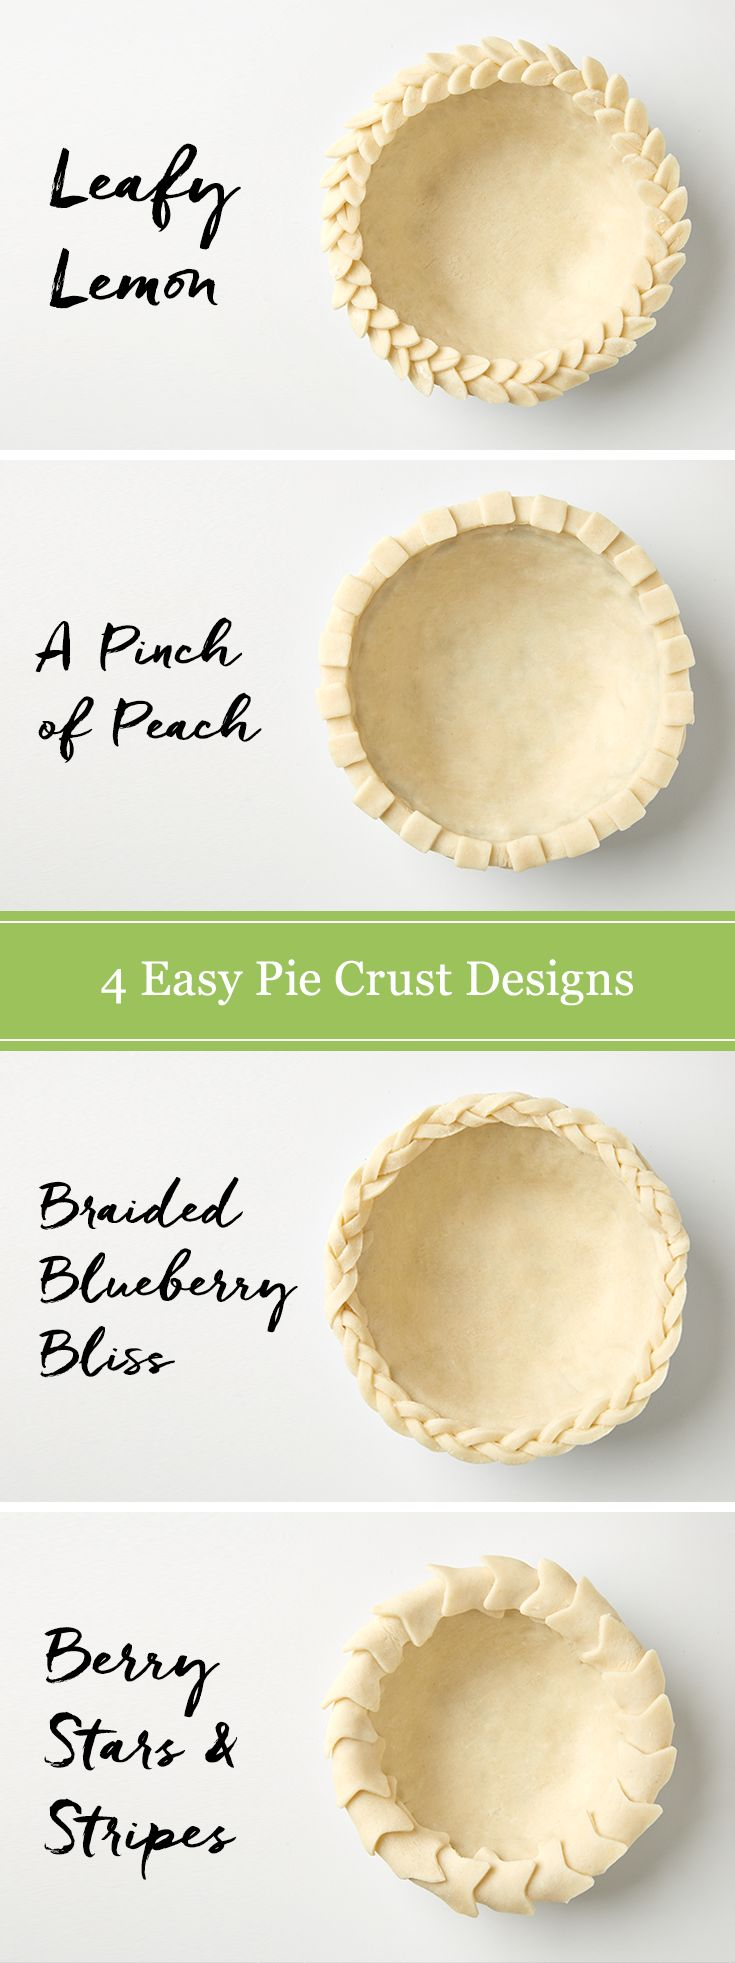 Making homemade dessert accents is easy with a store-bought pie crust and our helpful design ideas. Learn how to make a braided edge, leaves, a lattice top and more. Great for those Fourth of July apple pies!